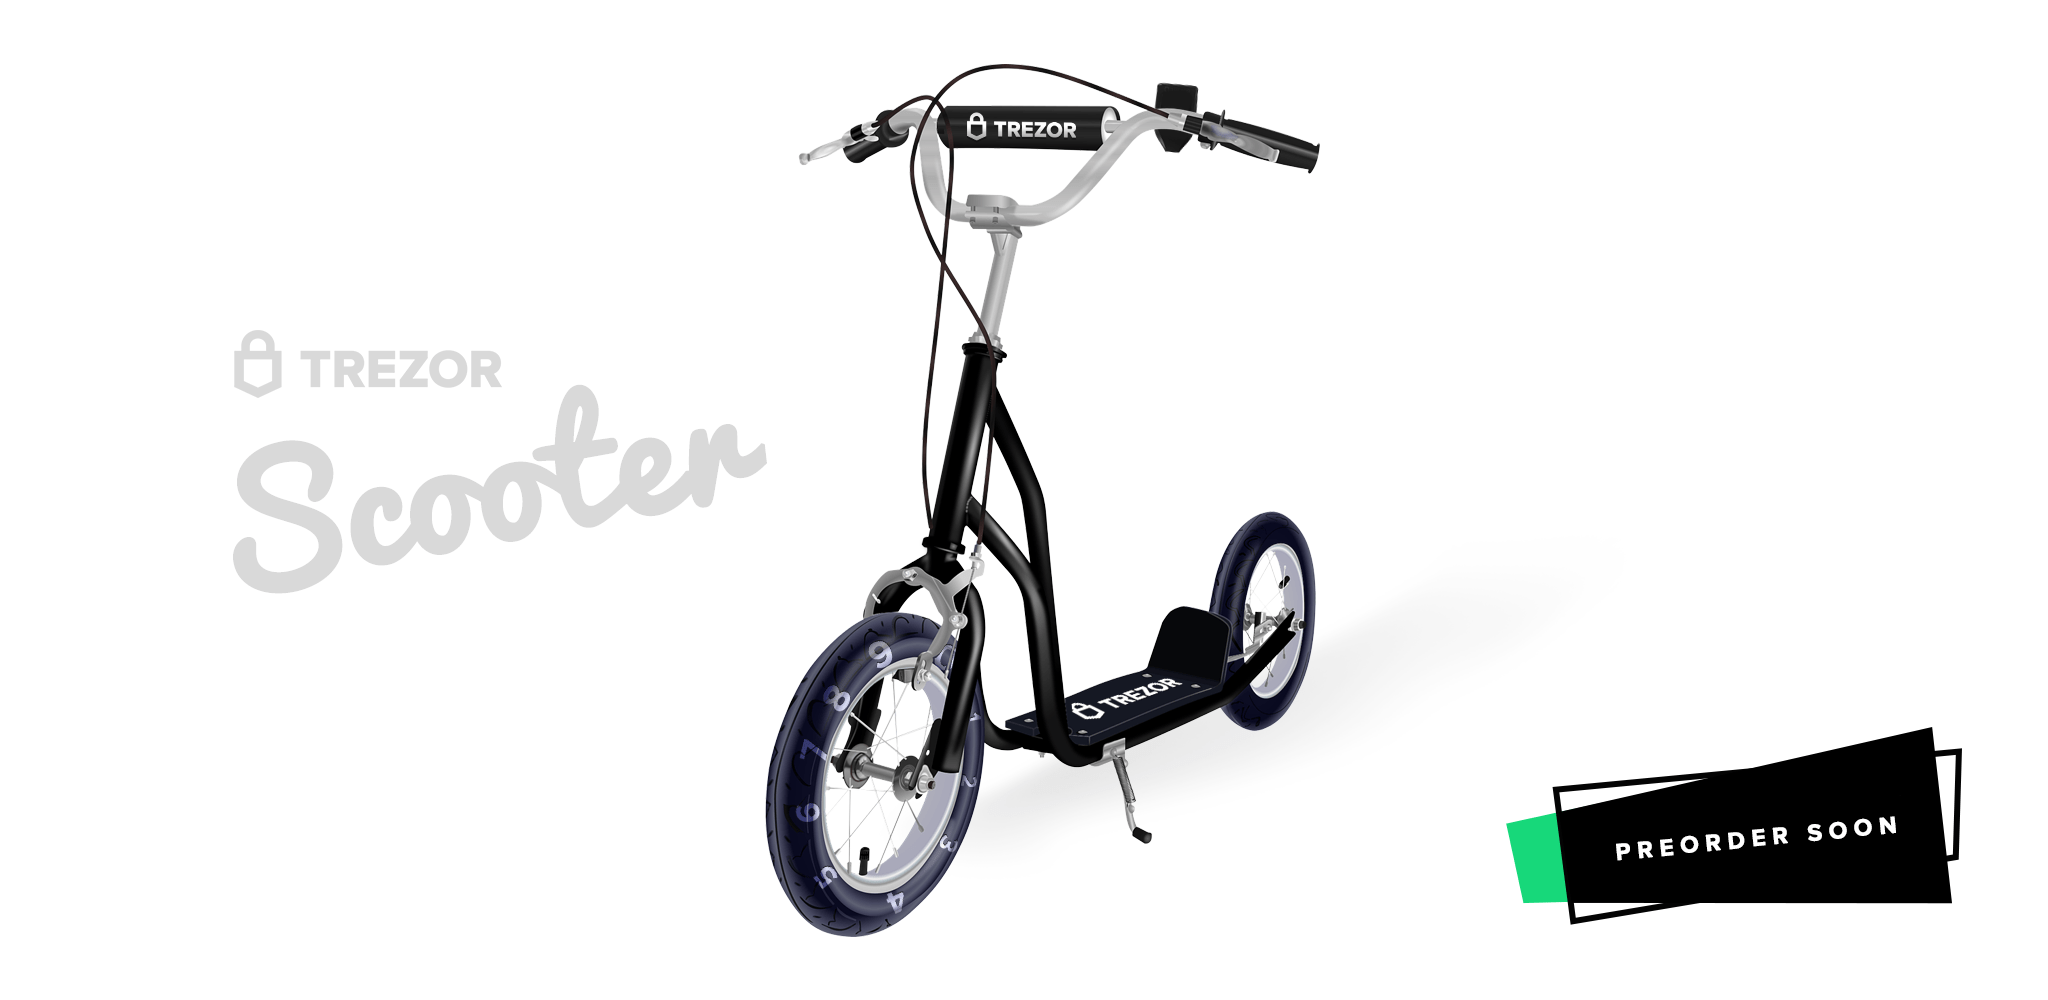 Introducing the TREZOR Scooter